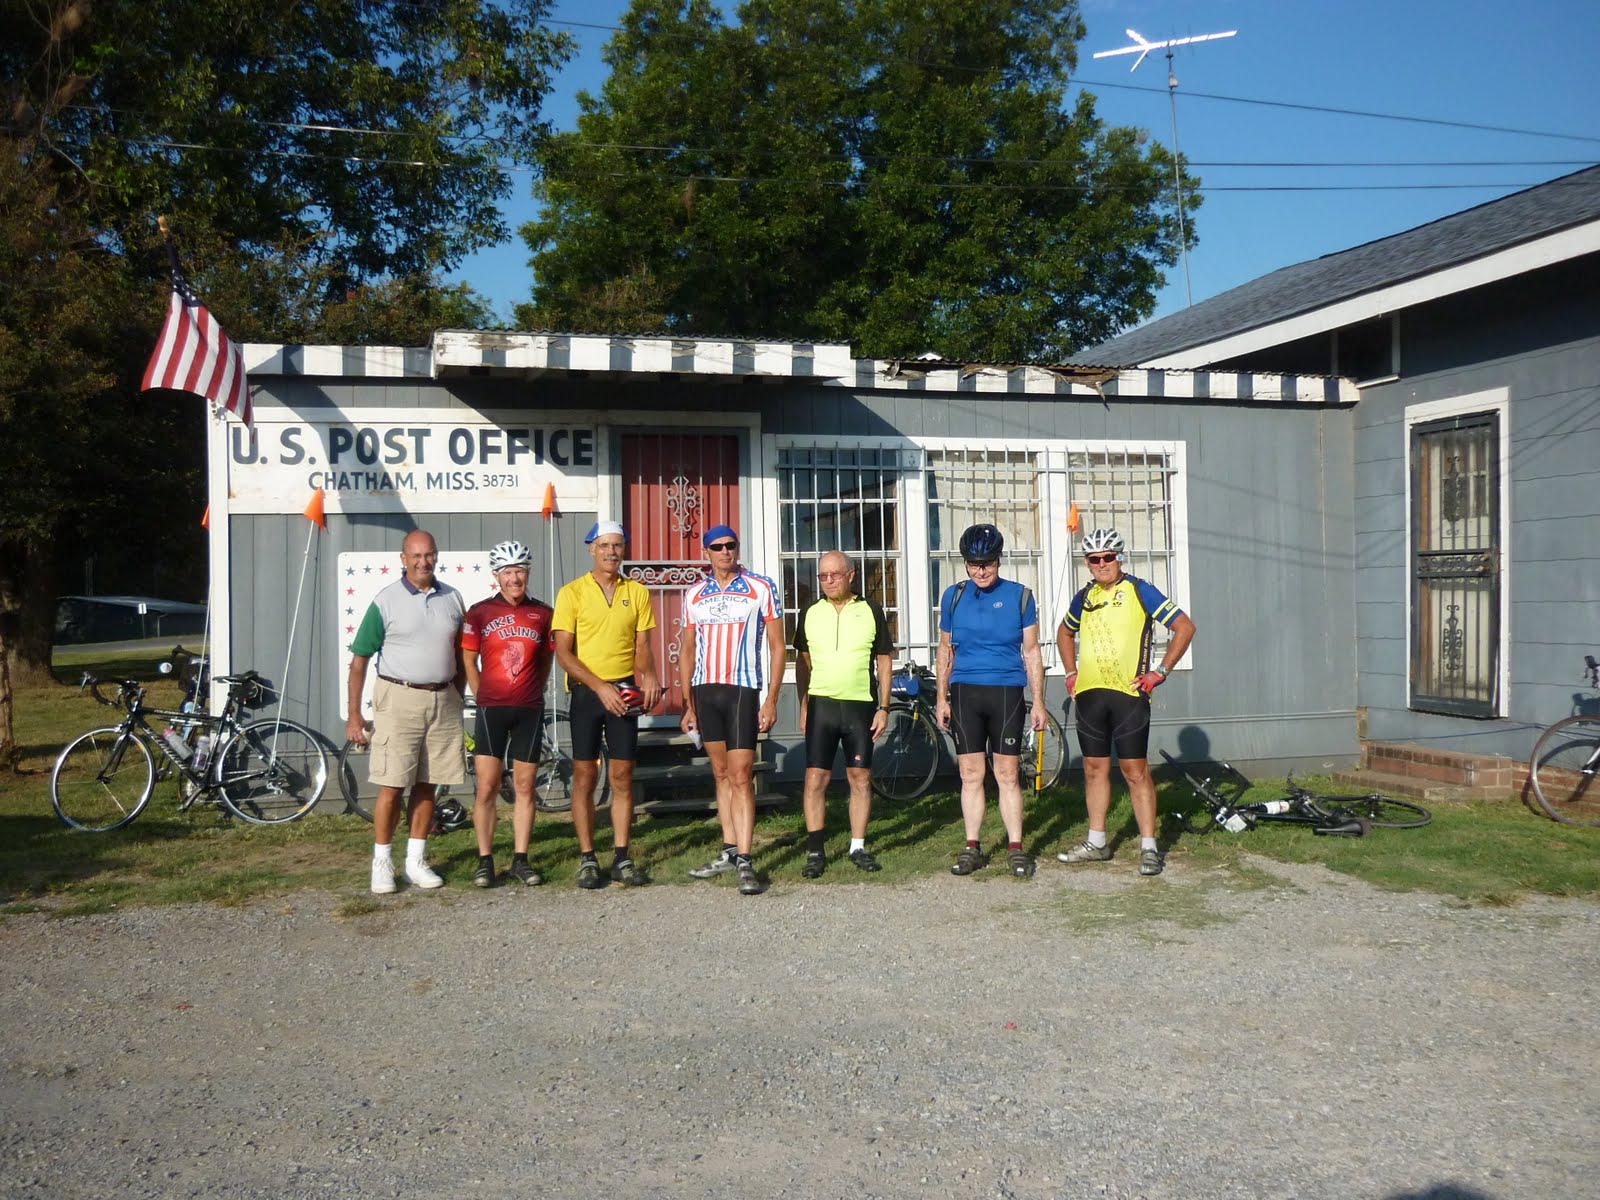 Mississippi washington county chatham - So We Found Ourselves In Front Of Roy S Store On The Corner Of None Other Than Roy S Store Rd And E Washington Lake Rd From Left To Right Are Emiel John